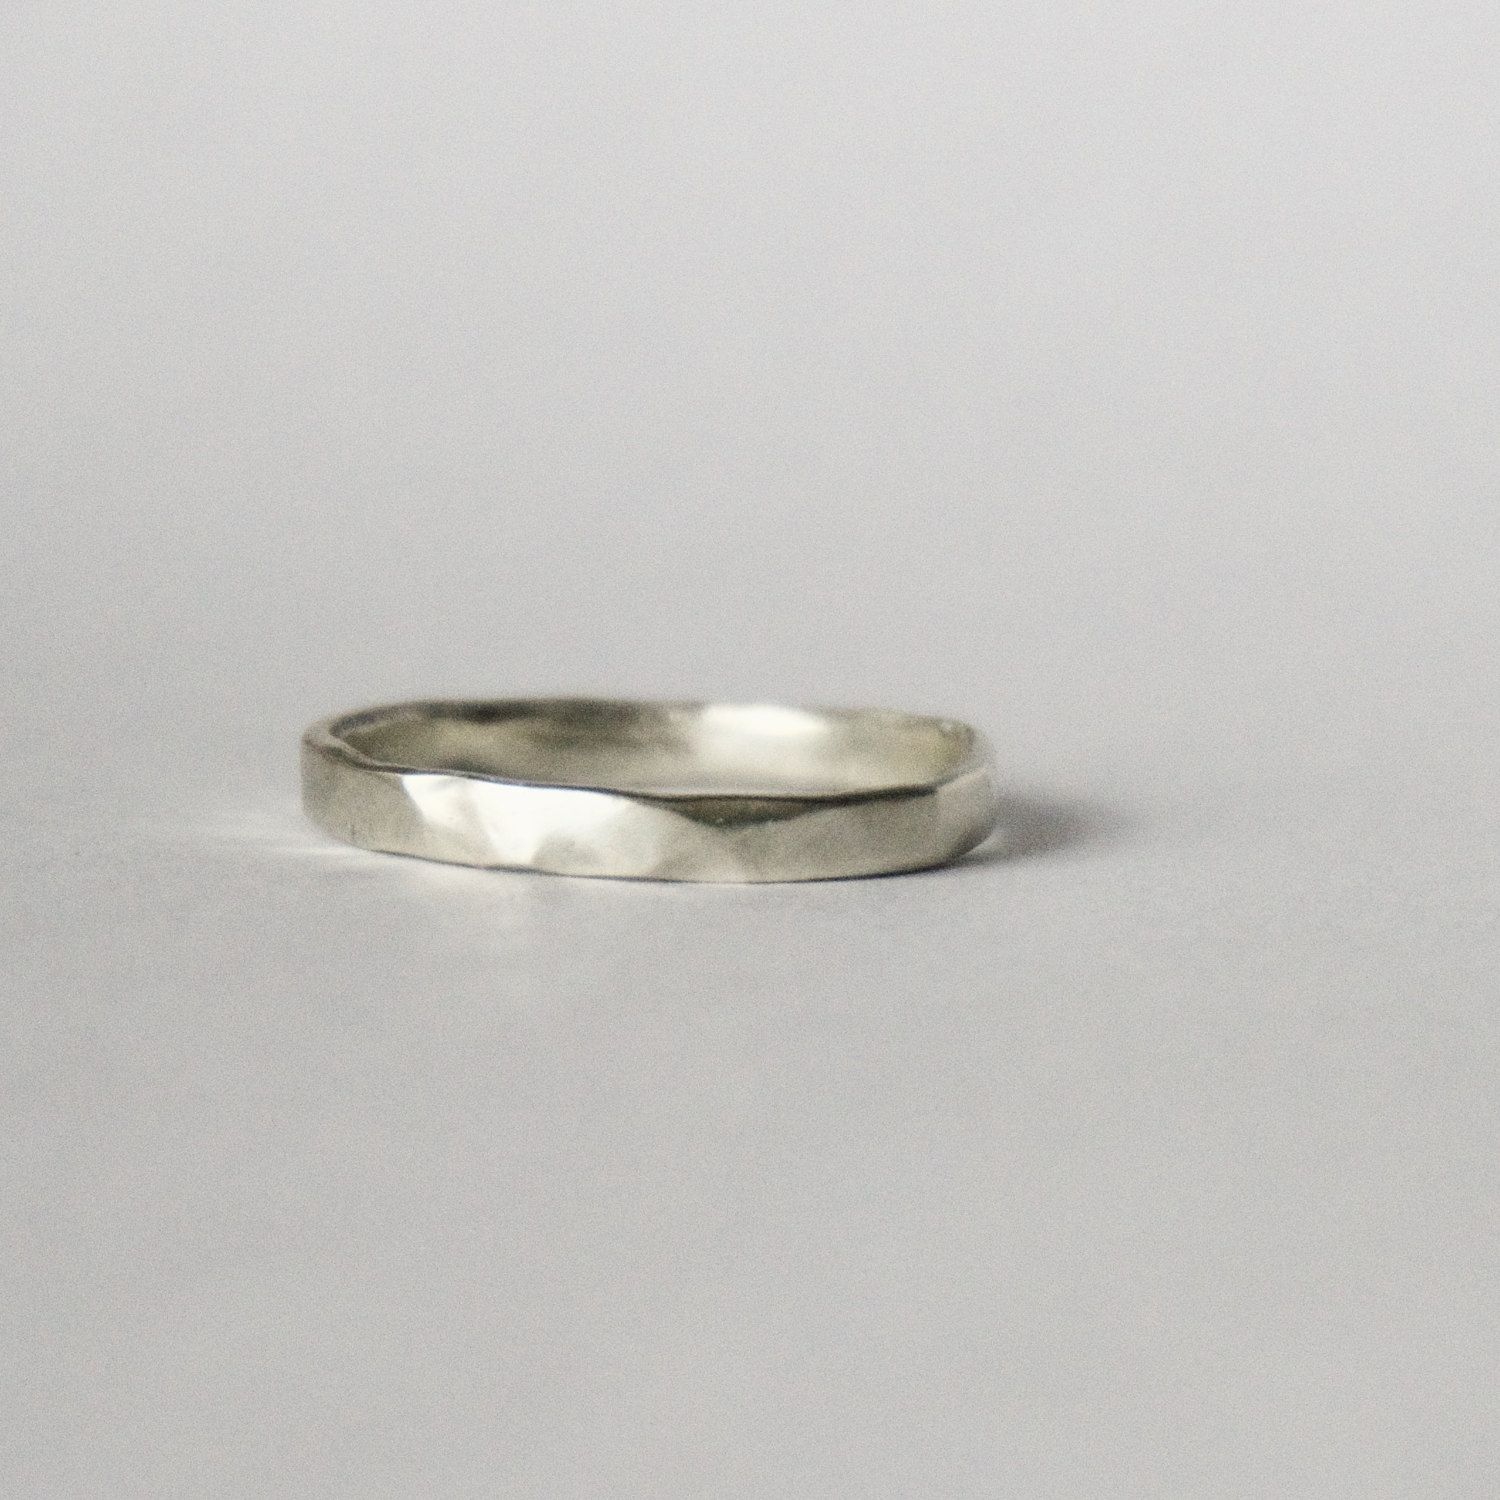 organic shape white gold ring wedding ring unique textured